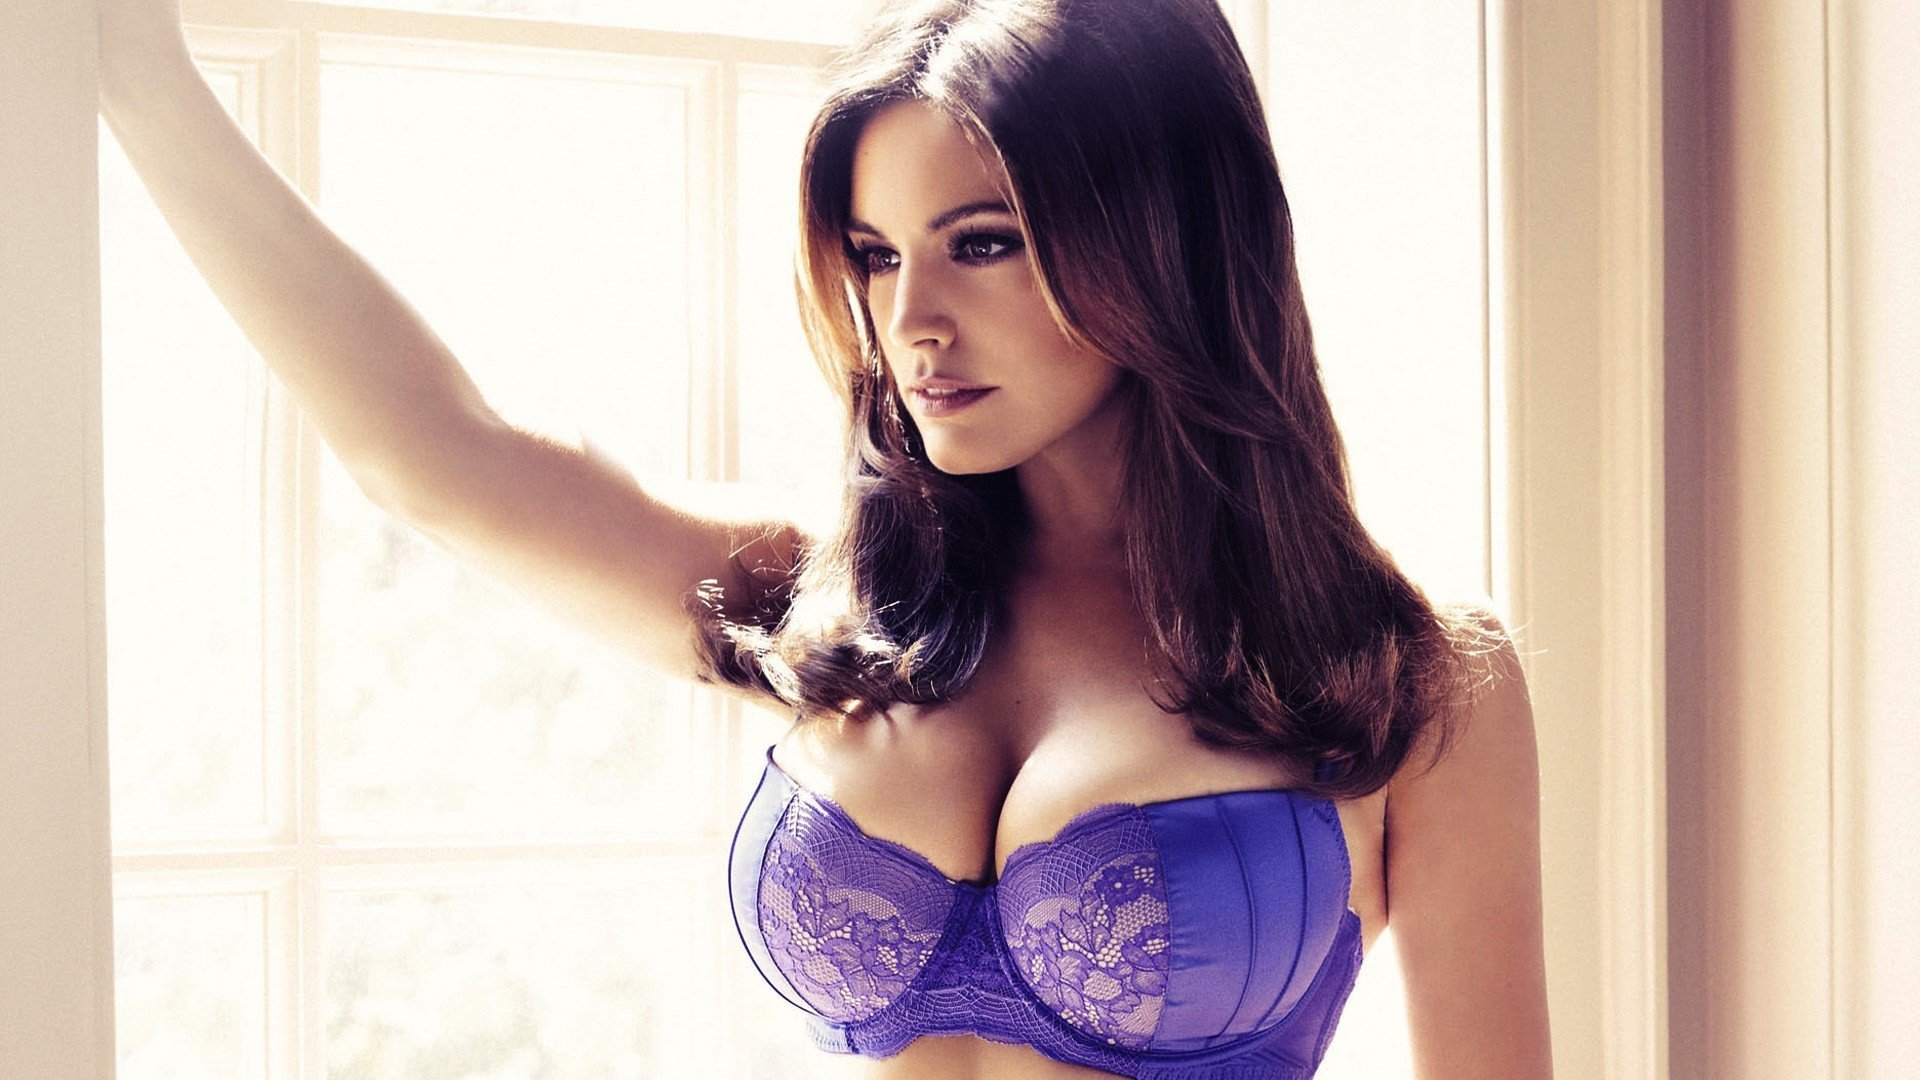 Kelly Brook Lingerie Wallpapers for Computer